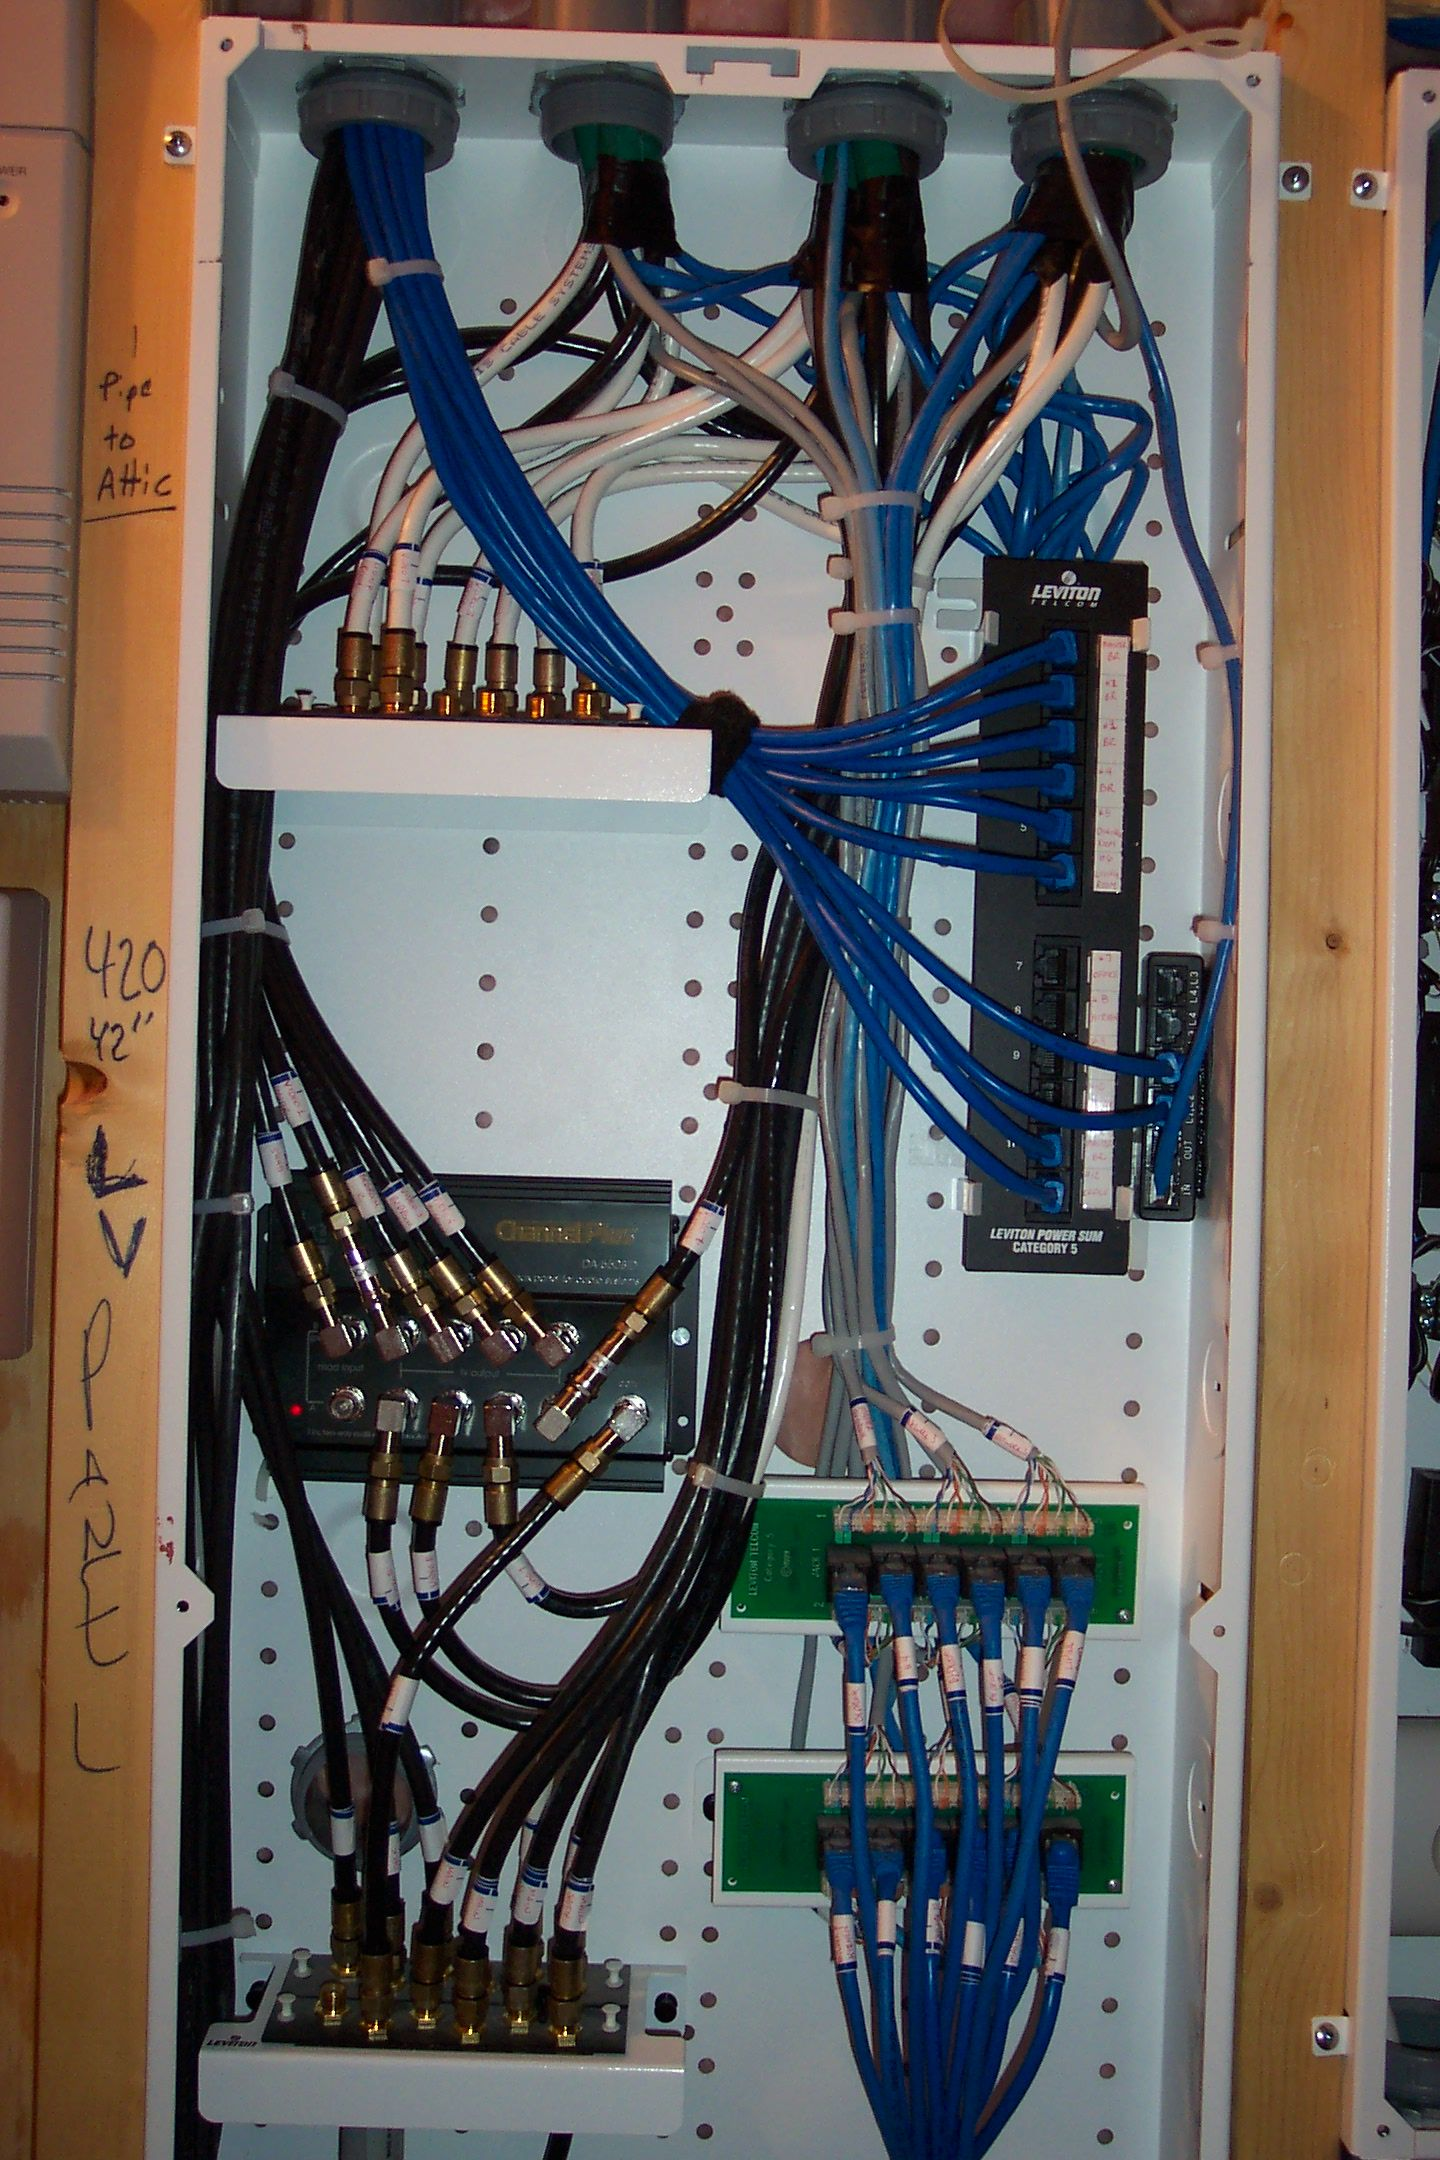 medium resolution of home ethernet wiring panel